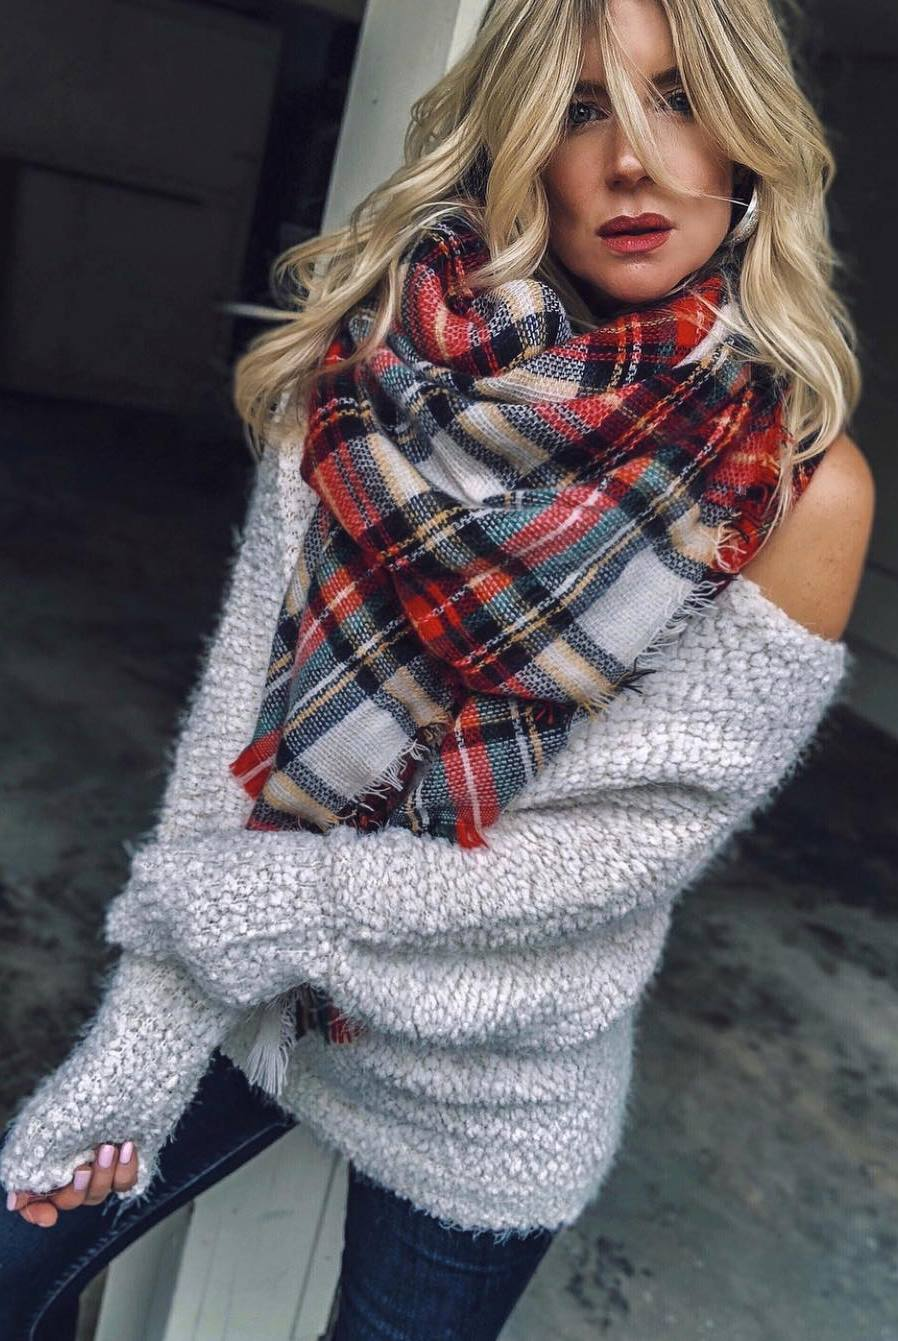 how to wear a plaid scarf : knit sweater and jeans